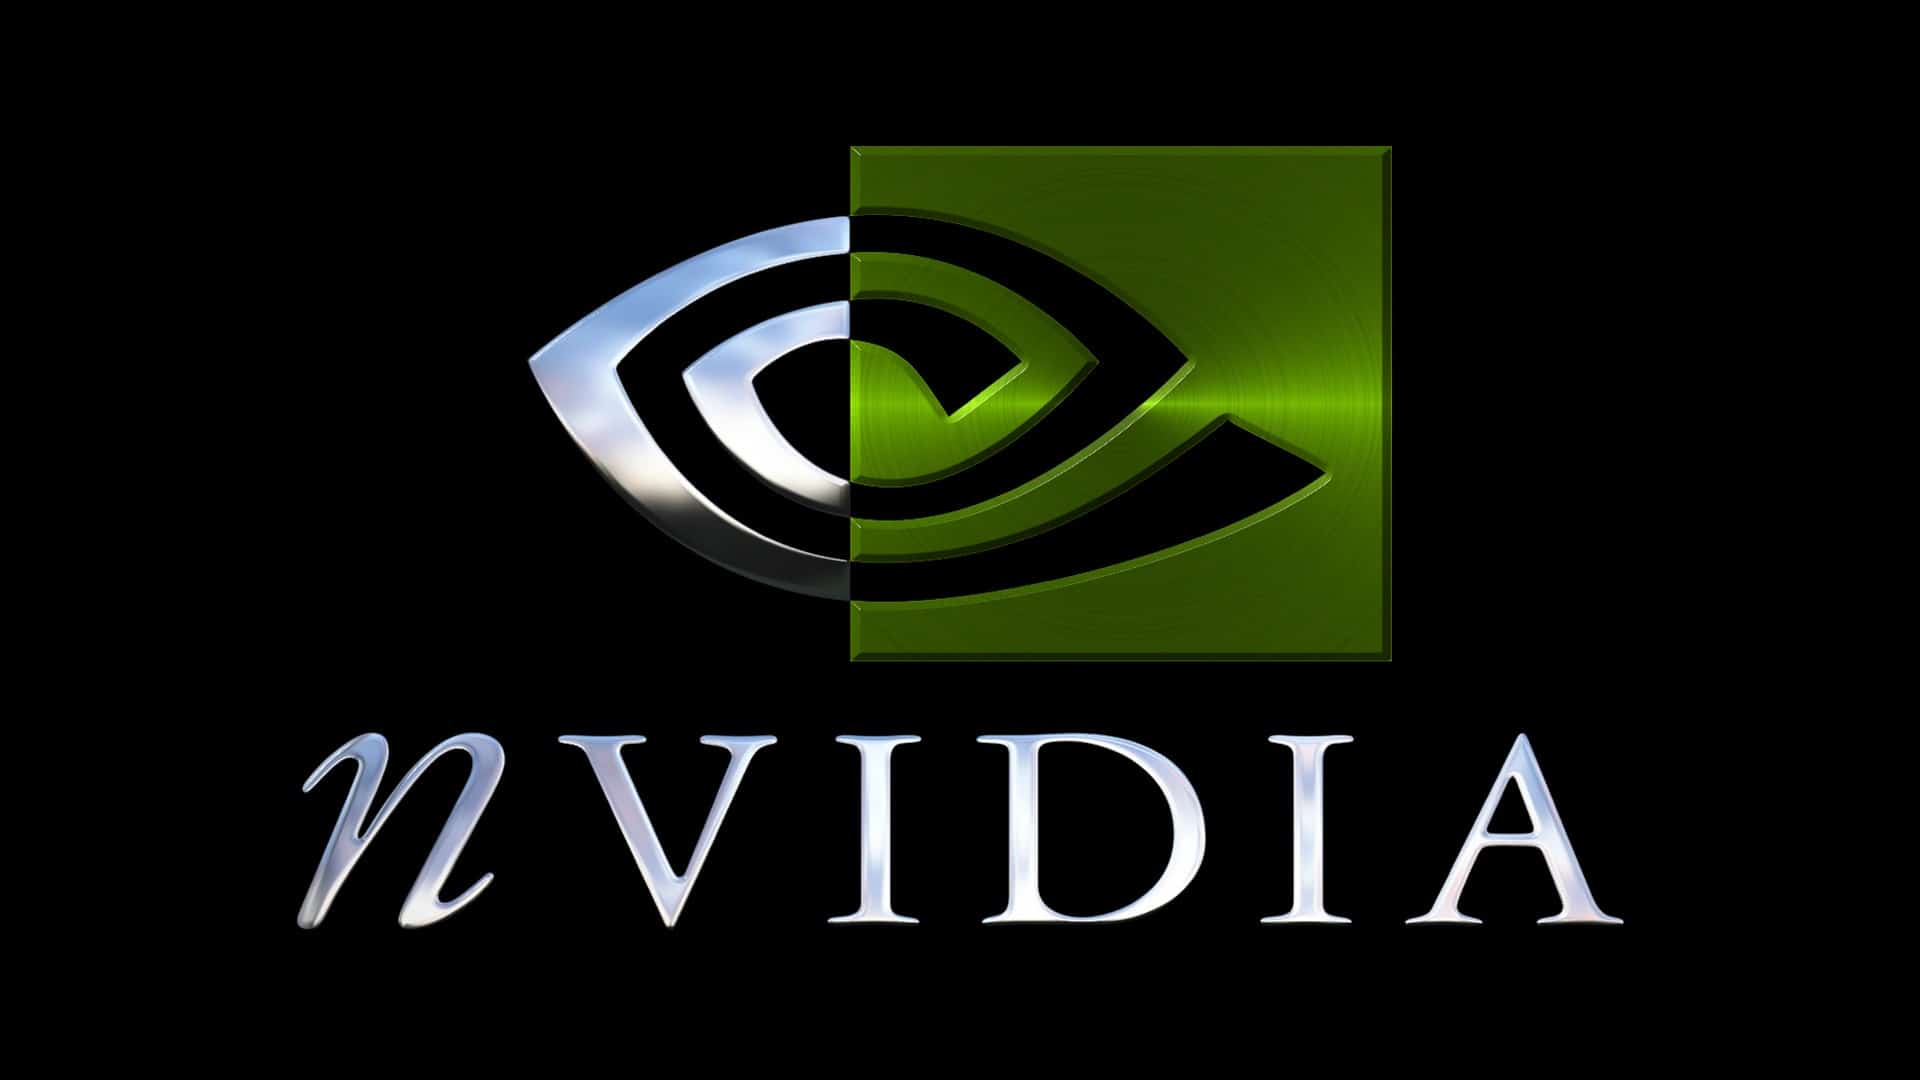 how to bring up nvidia overlay